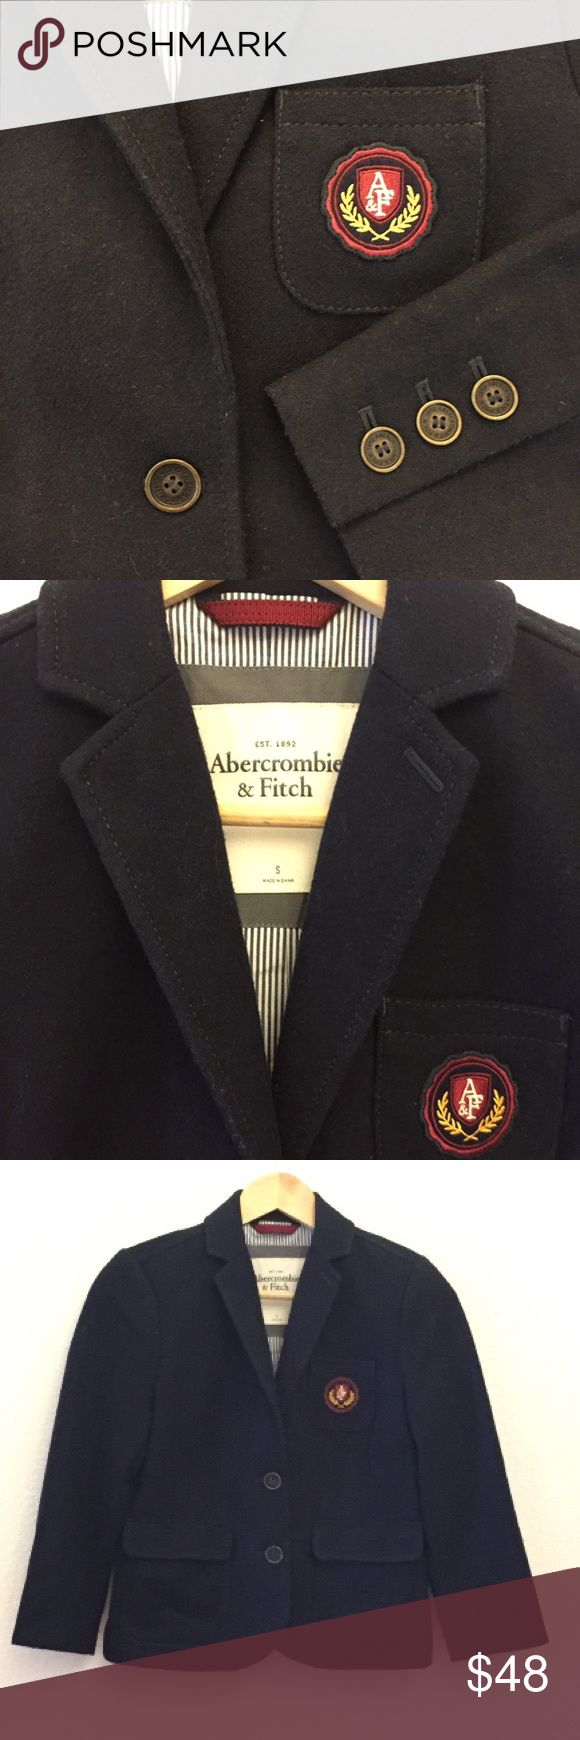 "Abercrombie and Fitch Blazer In excellent condition with no stains or tears, notch lapel, two front logo buttons, one front patch fitted with 4 vertical darts, two front patch pockets with flaps, 3/4 sleeves 19"", with three spaced logo buttons, 35"" bust, 22"" length Abercrombie & Fitch Jackets & Coats"